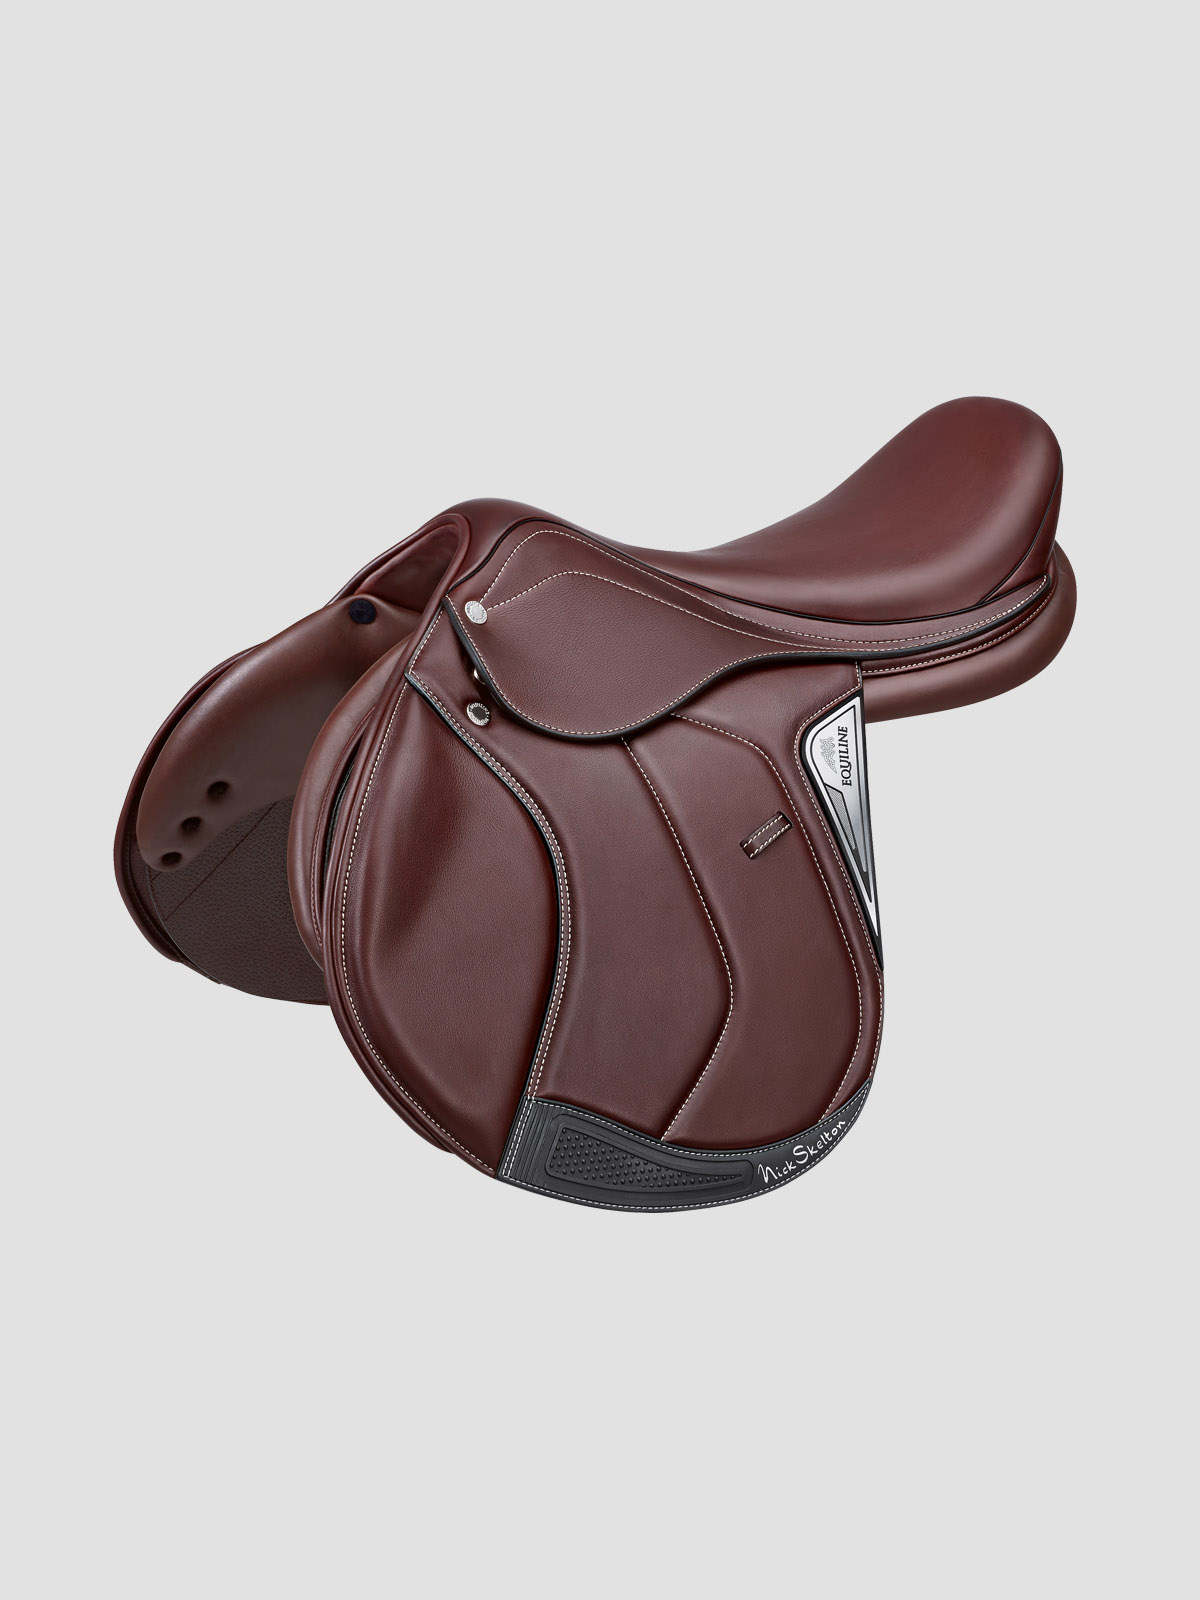 Equiline Nick skelton signature saddle in brown